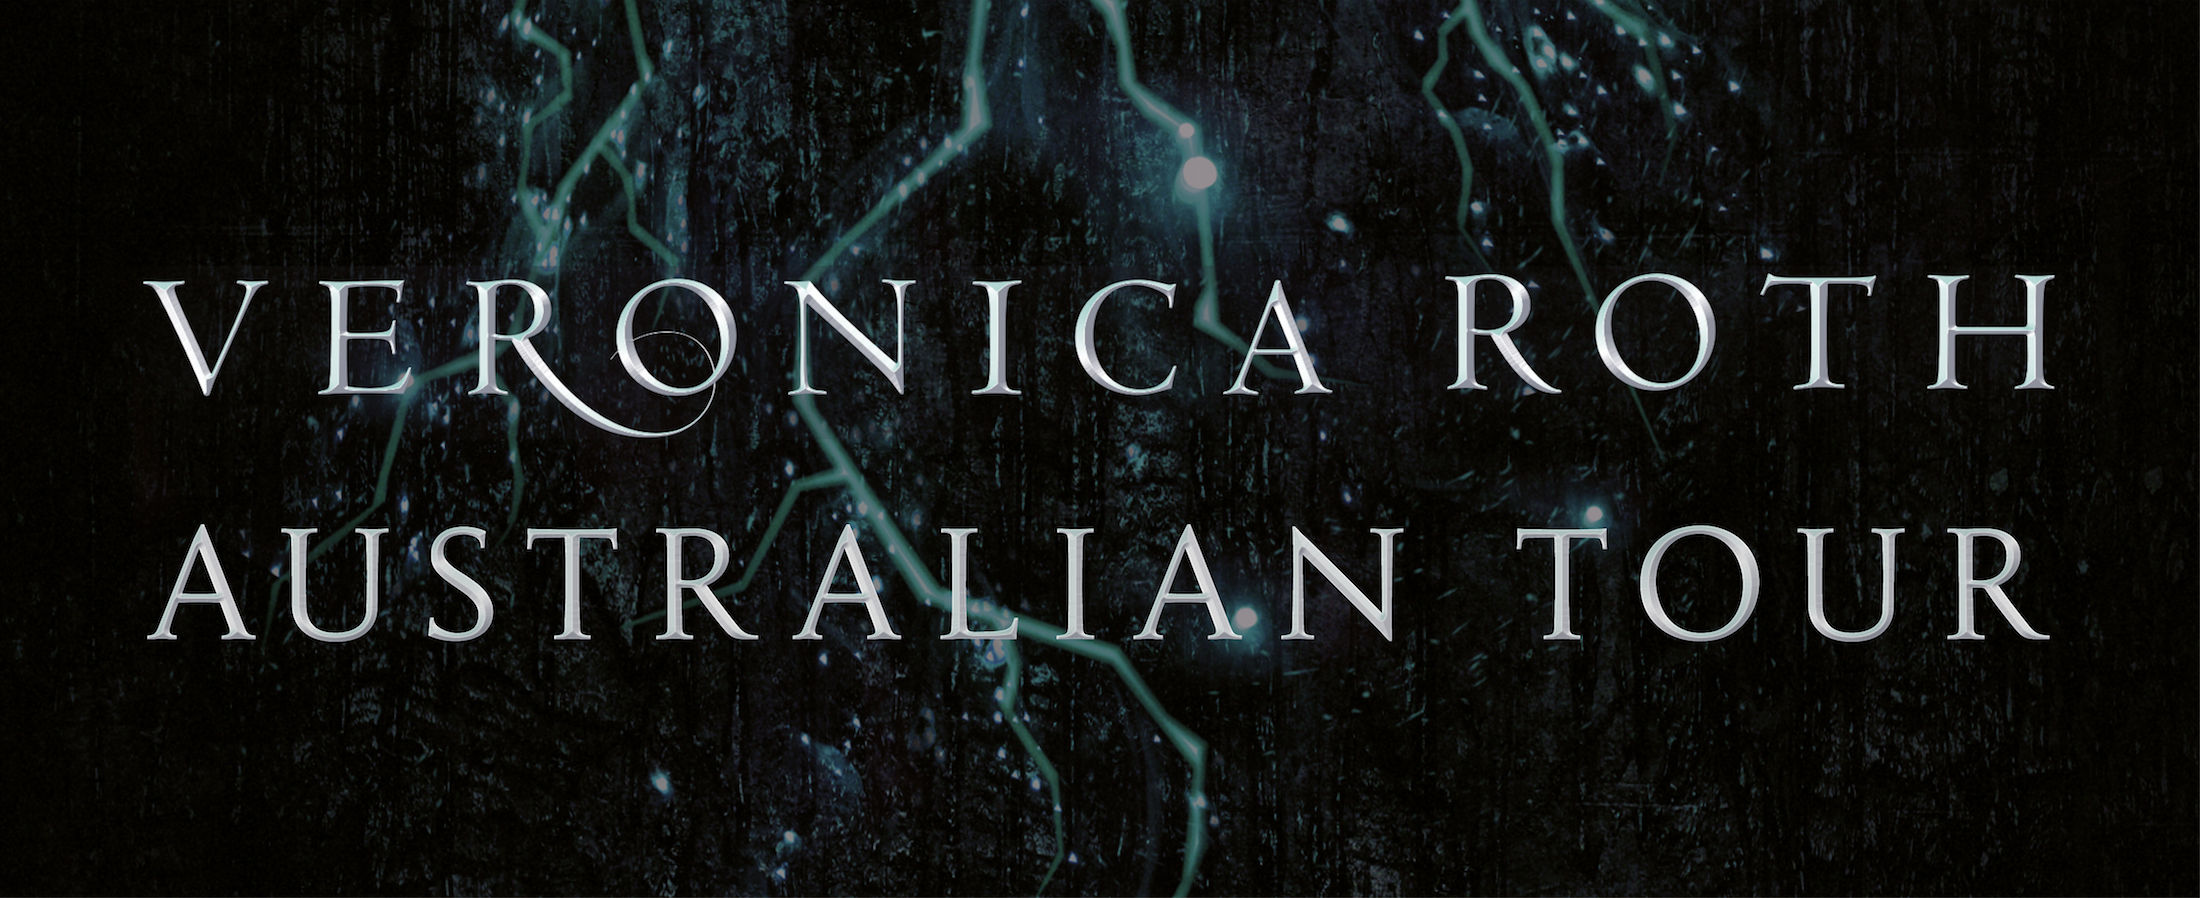 Veronica Roth Australia tour event